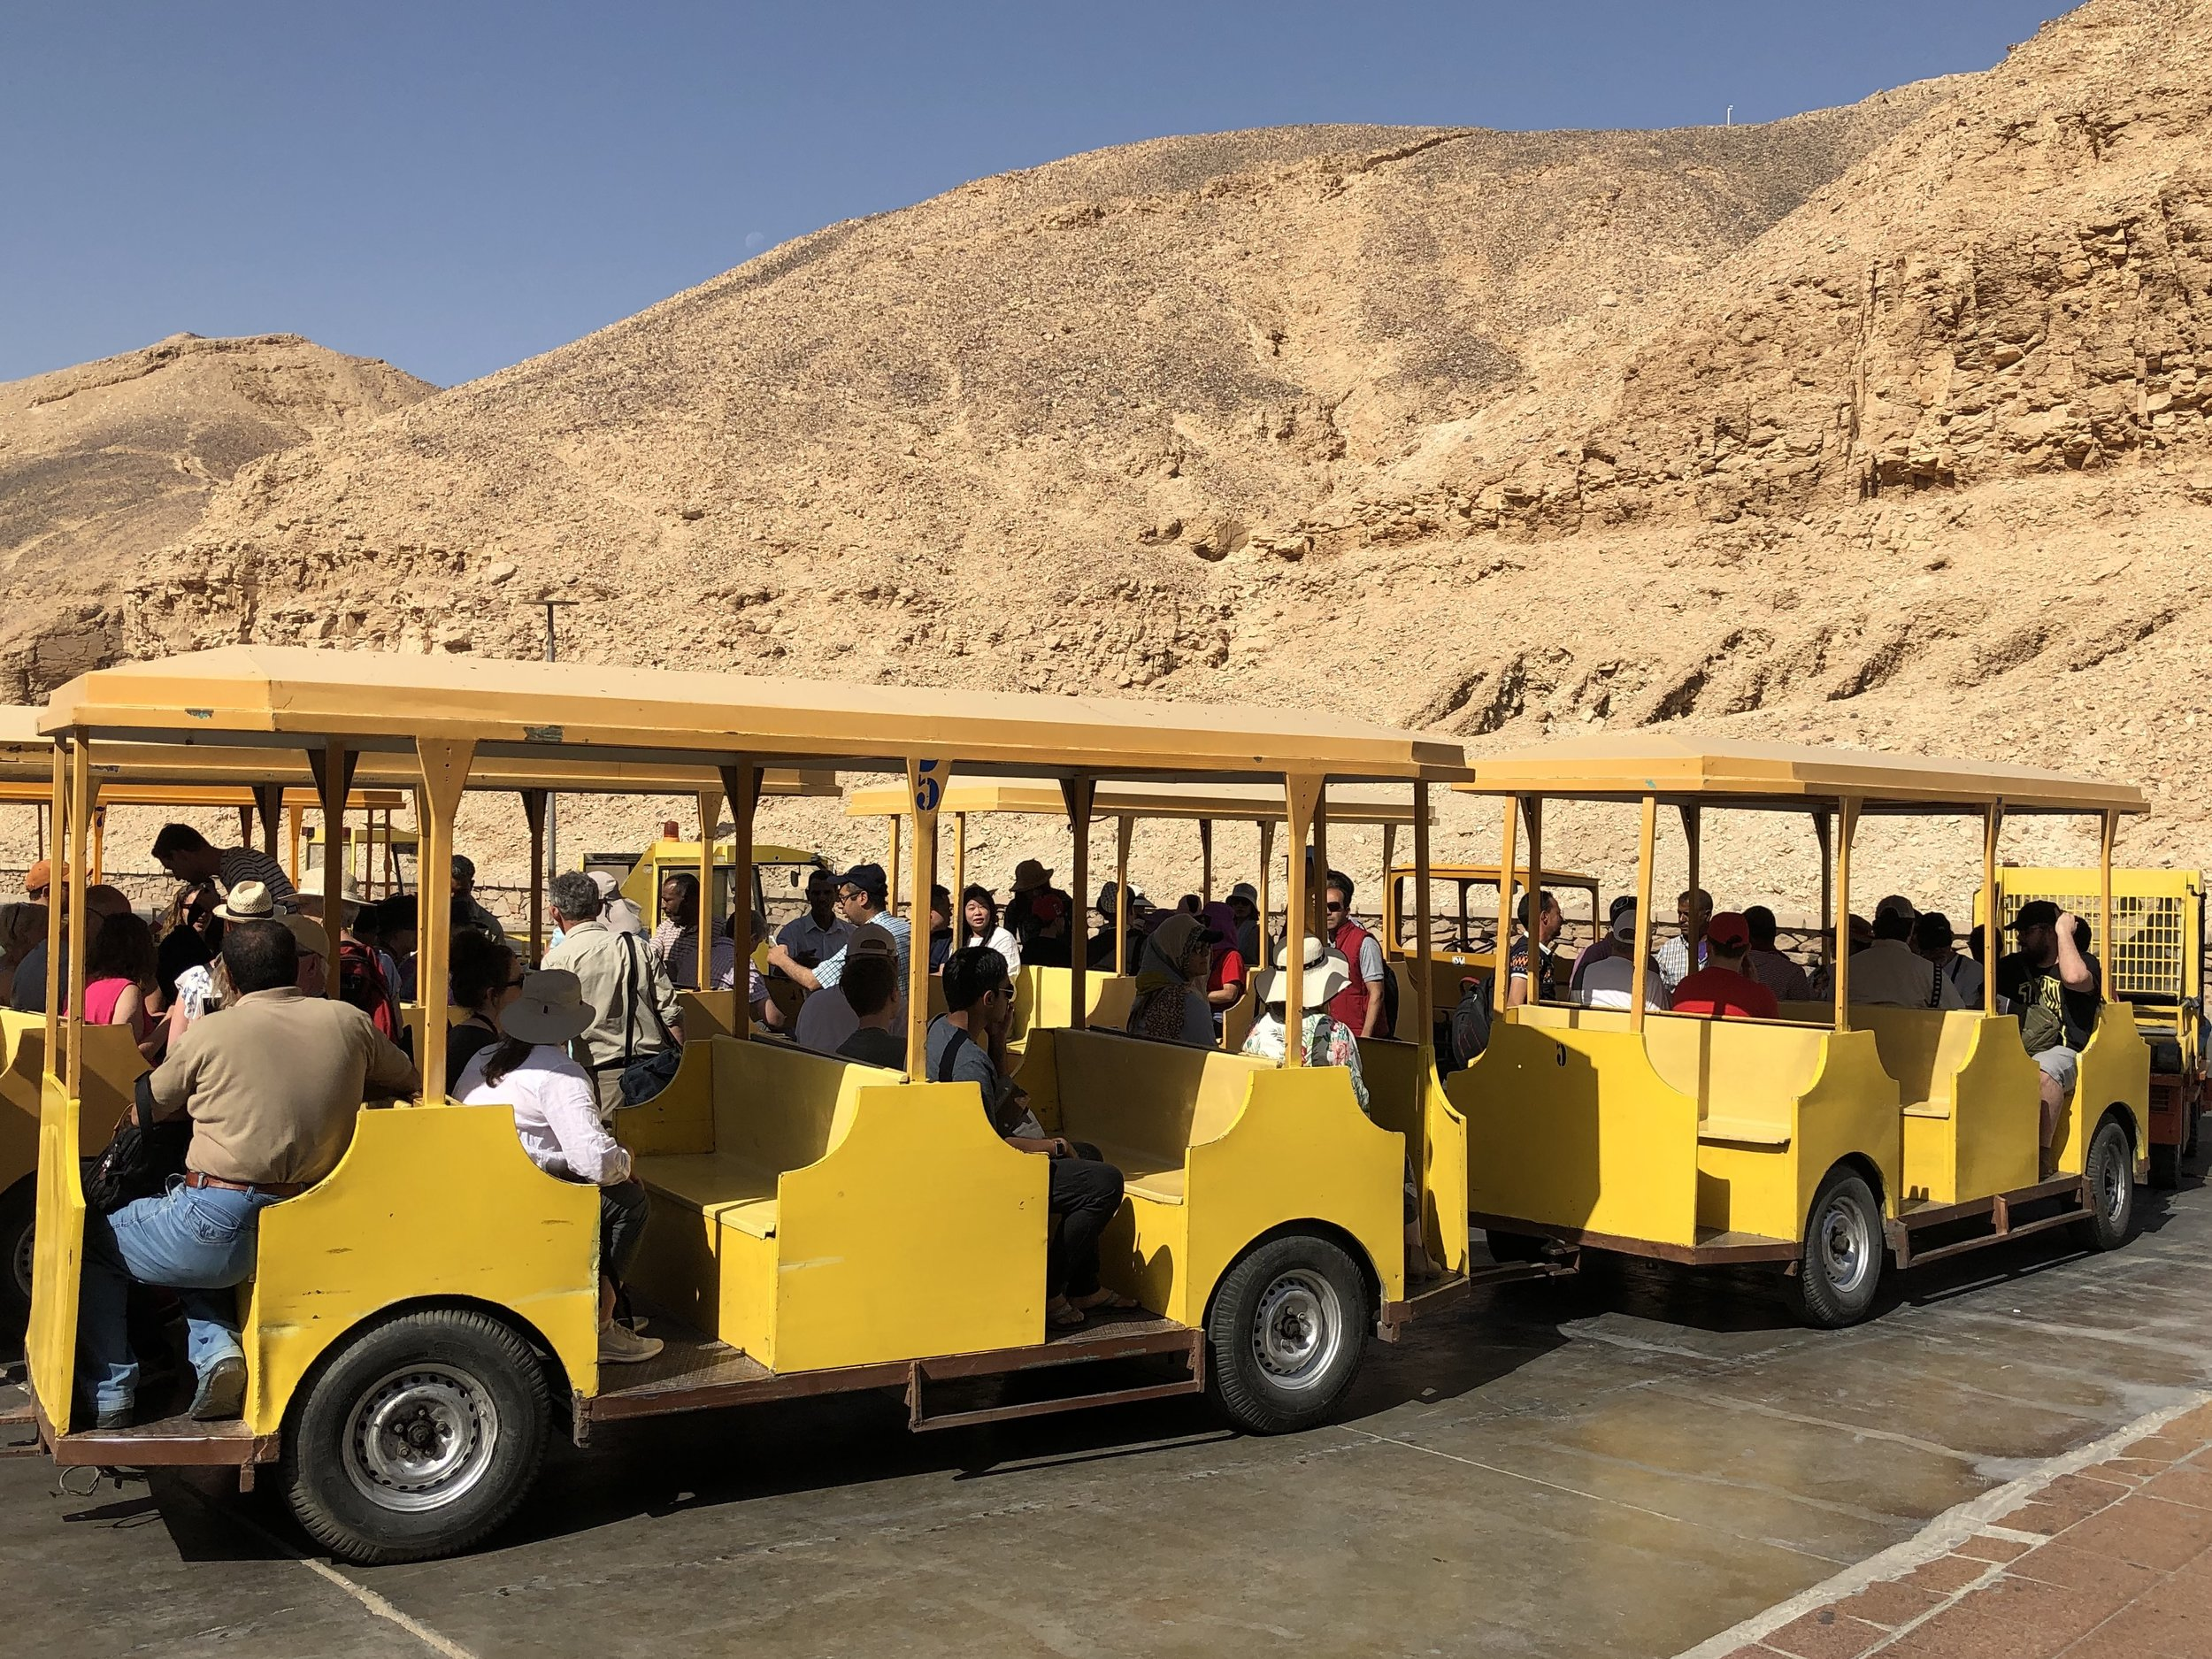 You can take one of these cute little yellow trams to get to the archeological site